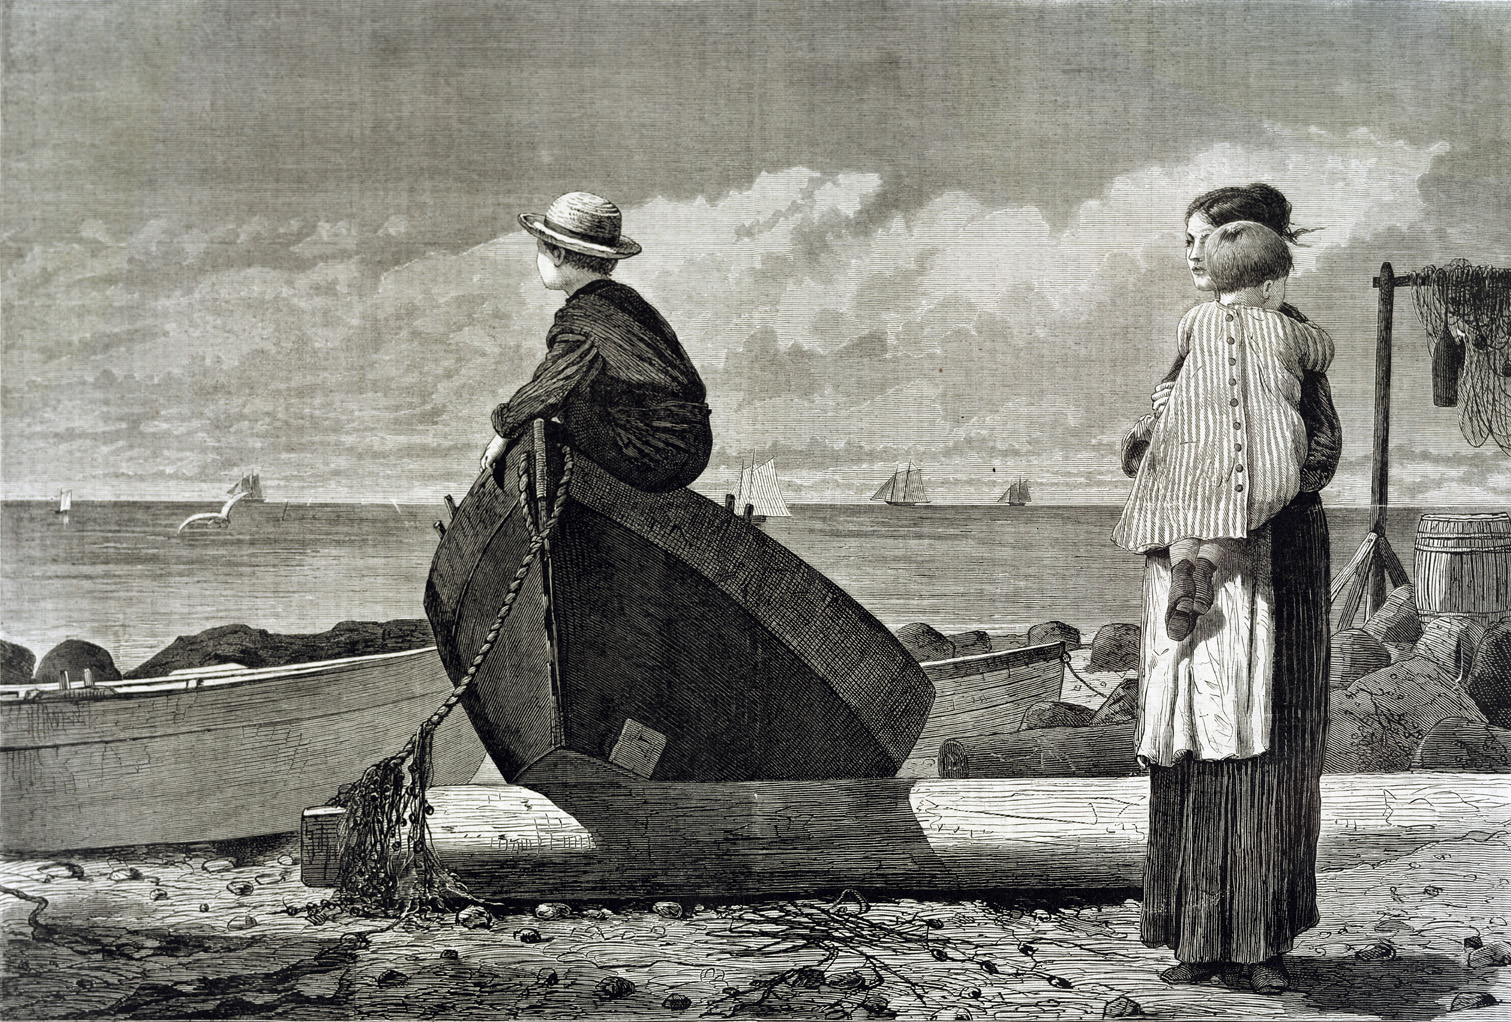 Dad's Coming, by Winslow Homer, 1873. Boston Public Library, Print Department, Massachusetts.